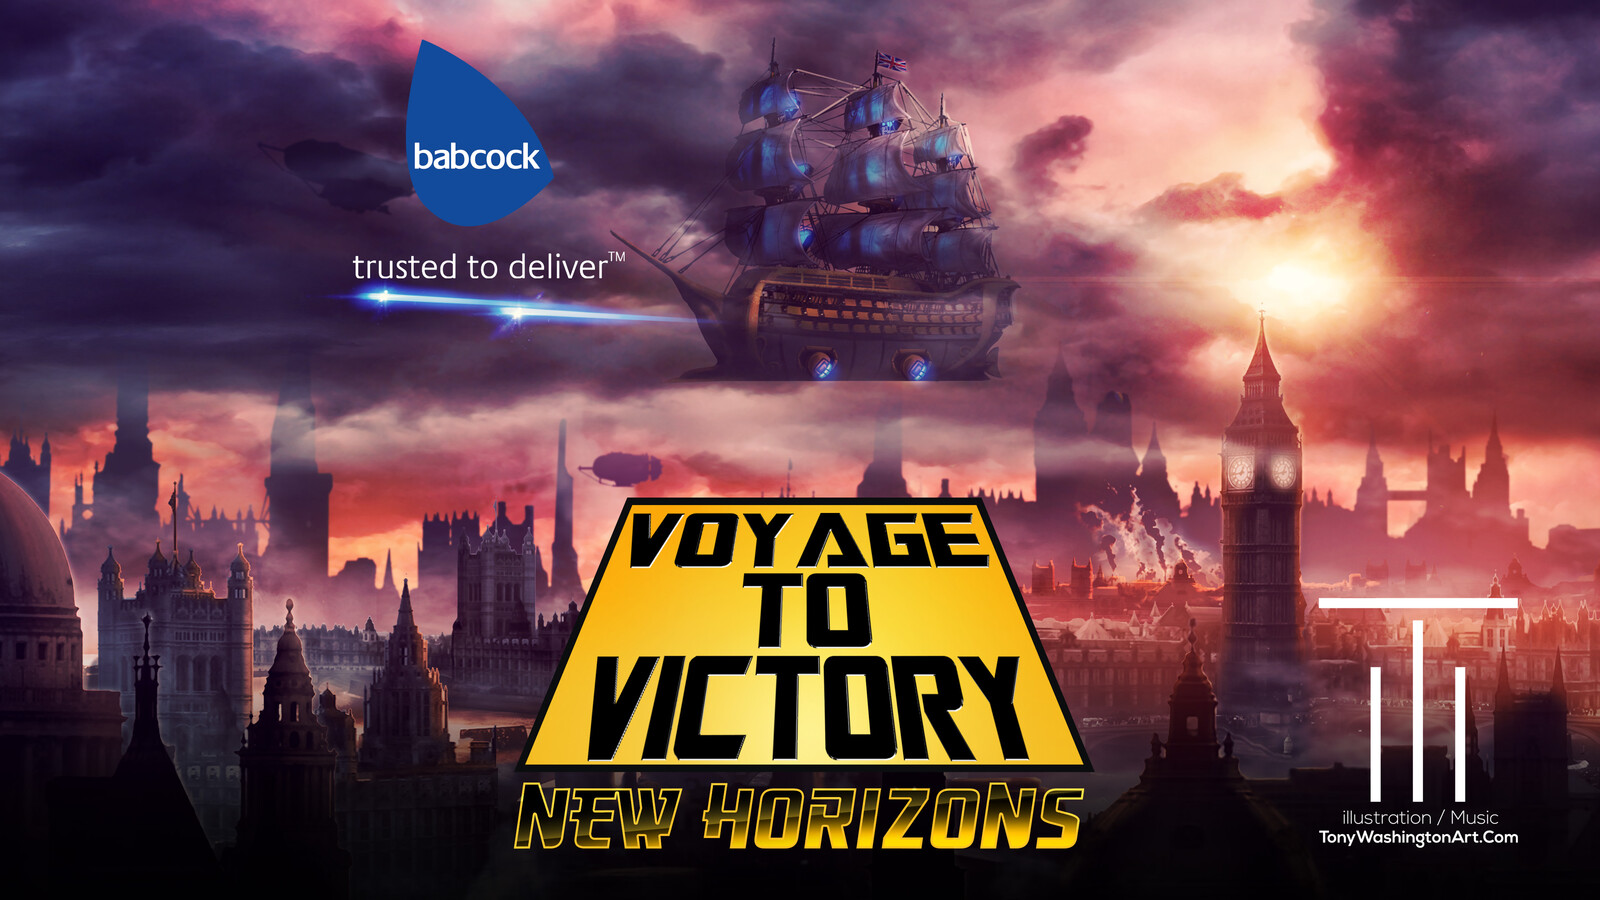 Babcock - Voyage to Victory + Video Breakdown